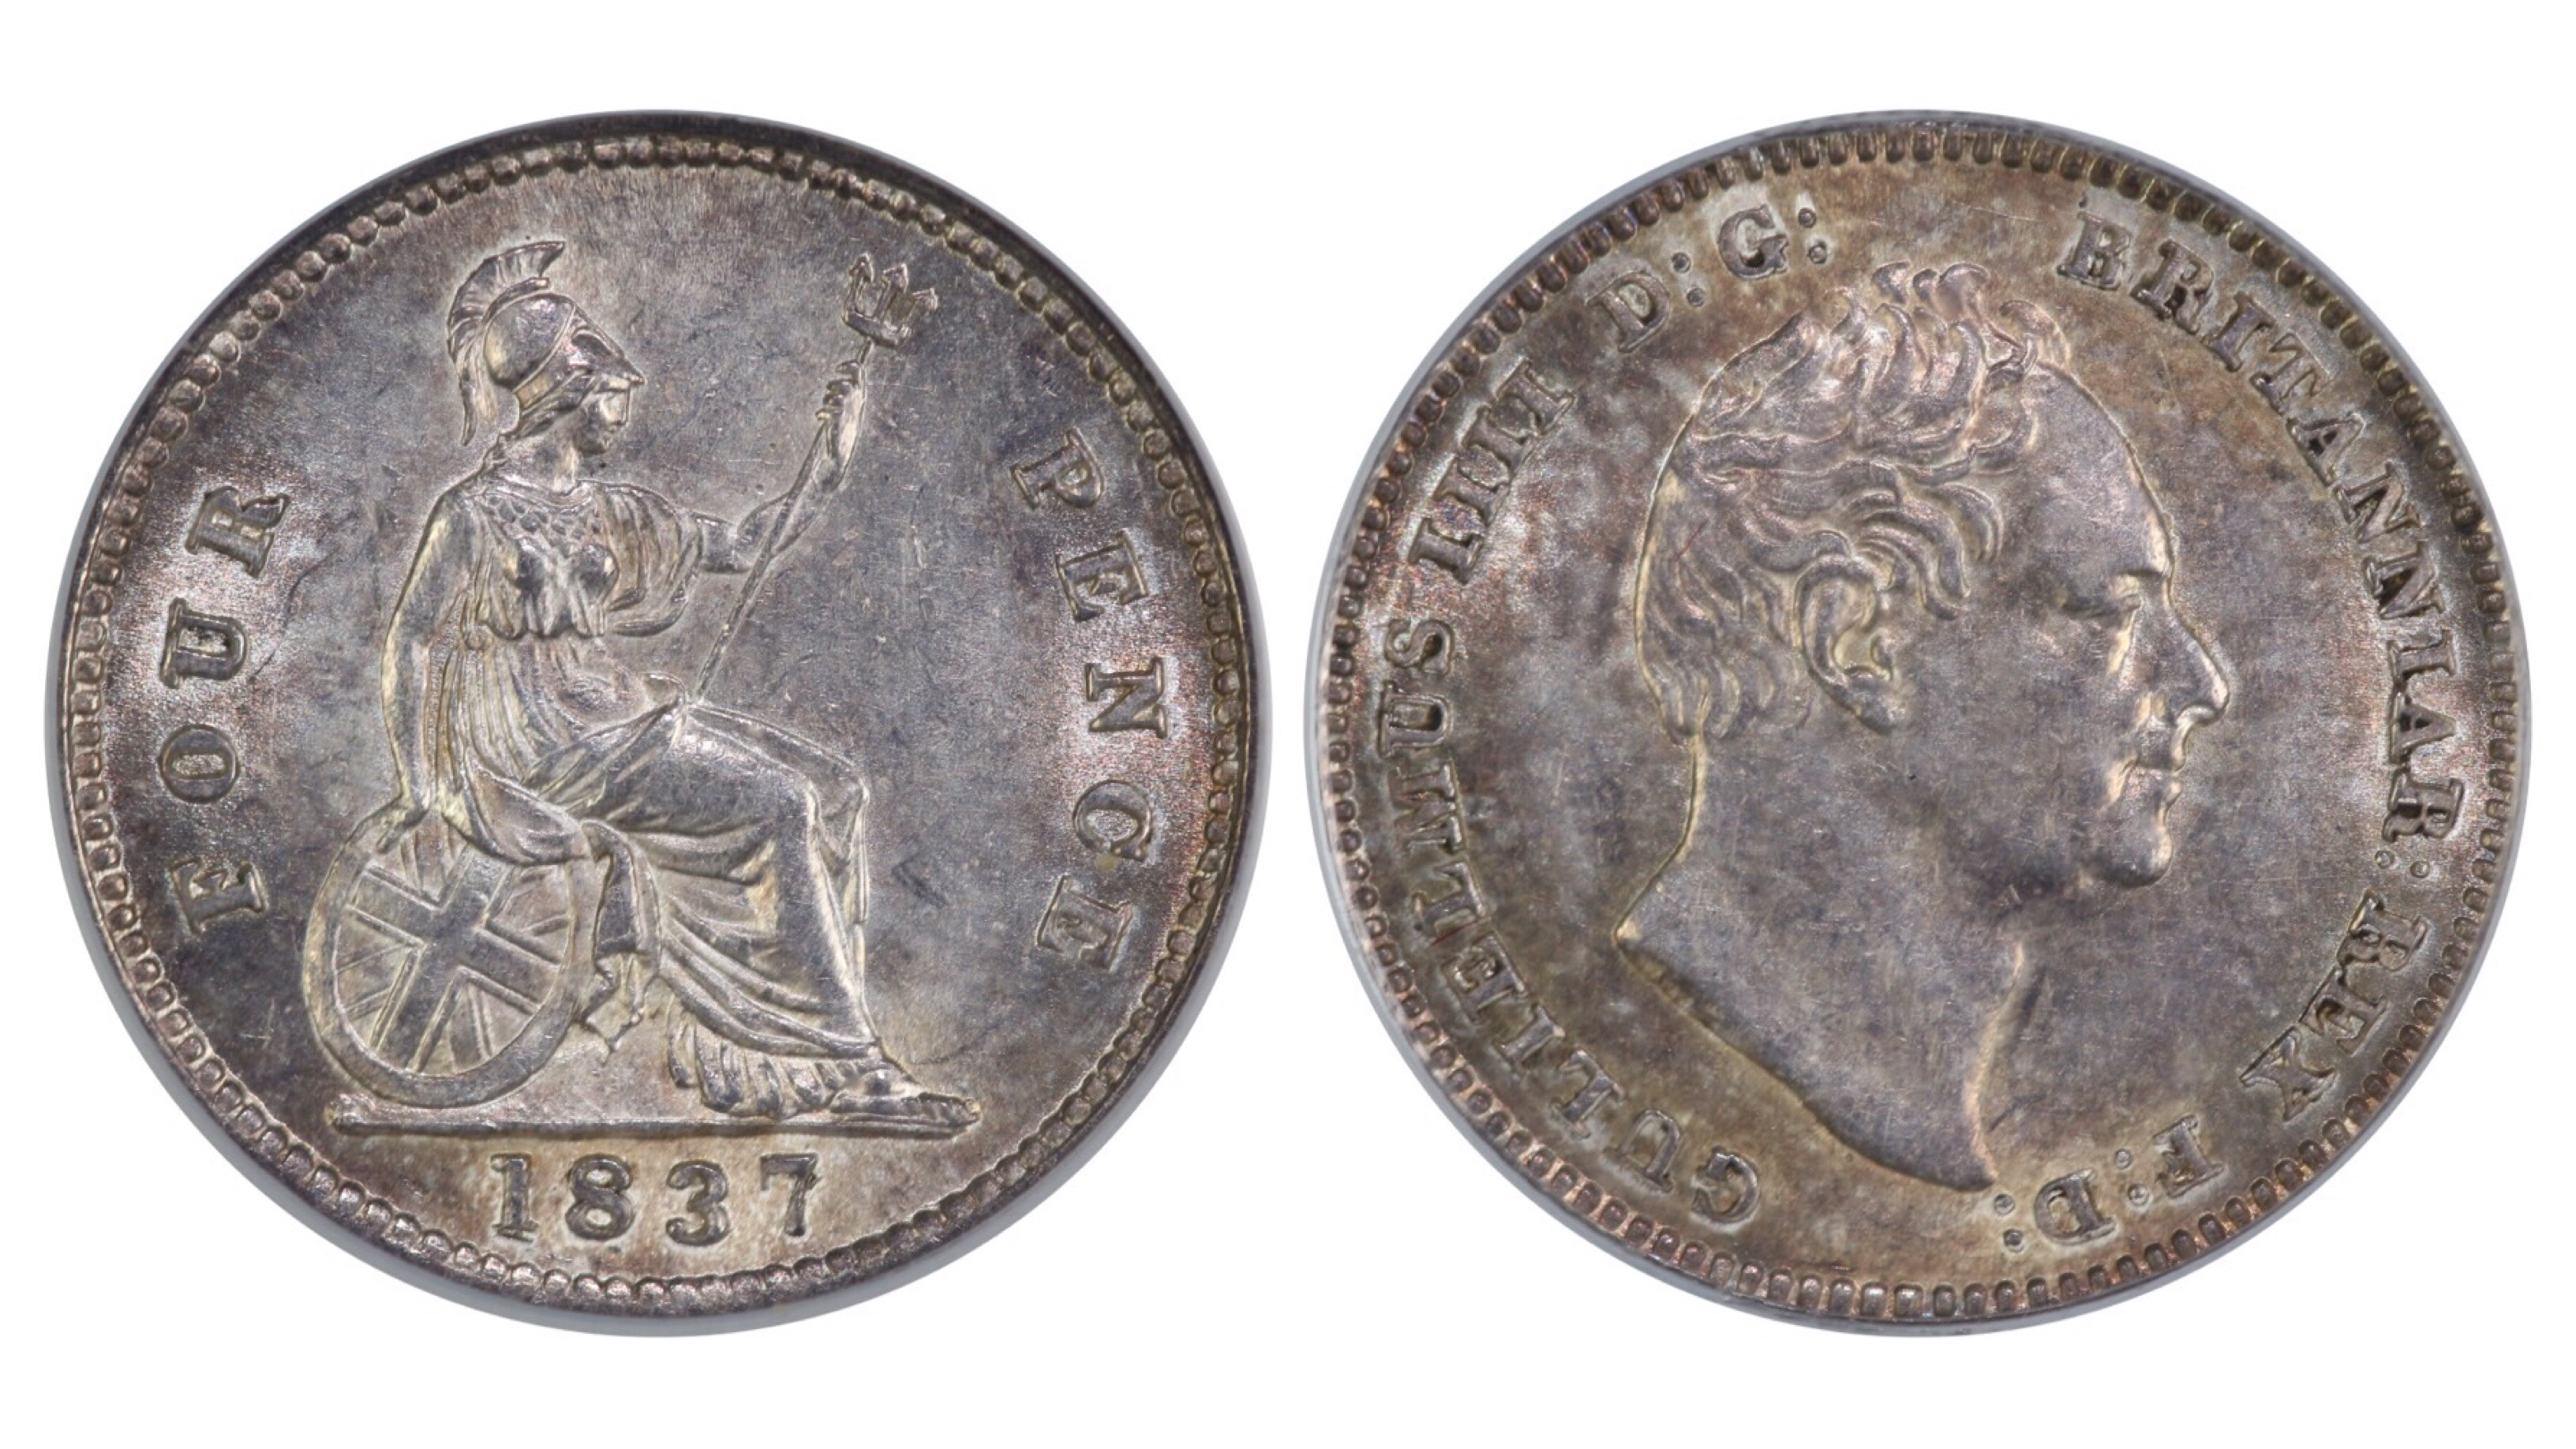 1837 Groat, CGS 75, William IV, Dies 1A(small head), Davies 383, AW2, UIN 19496